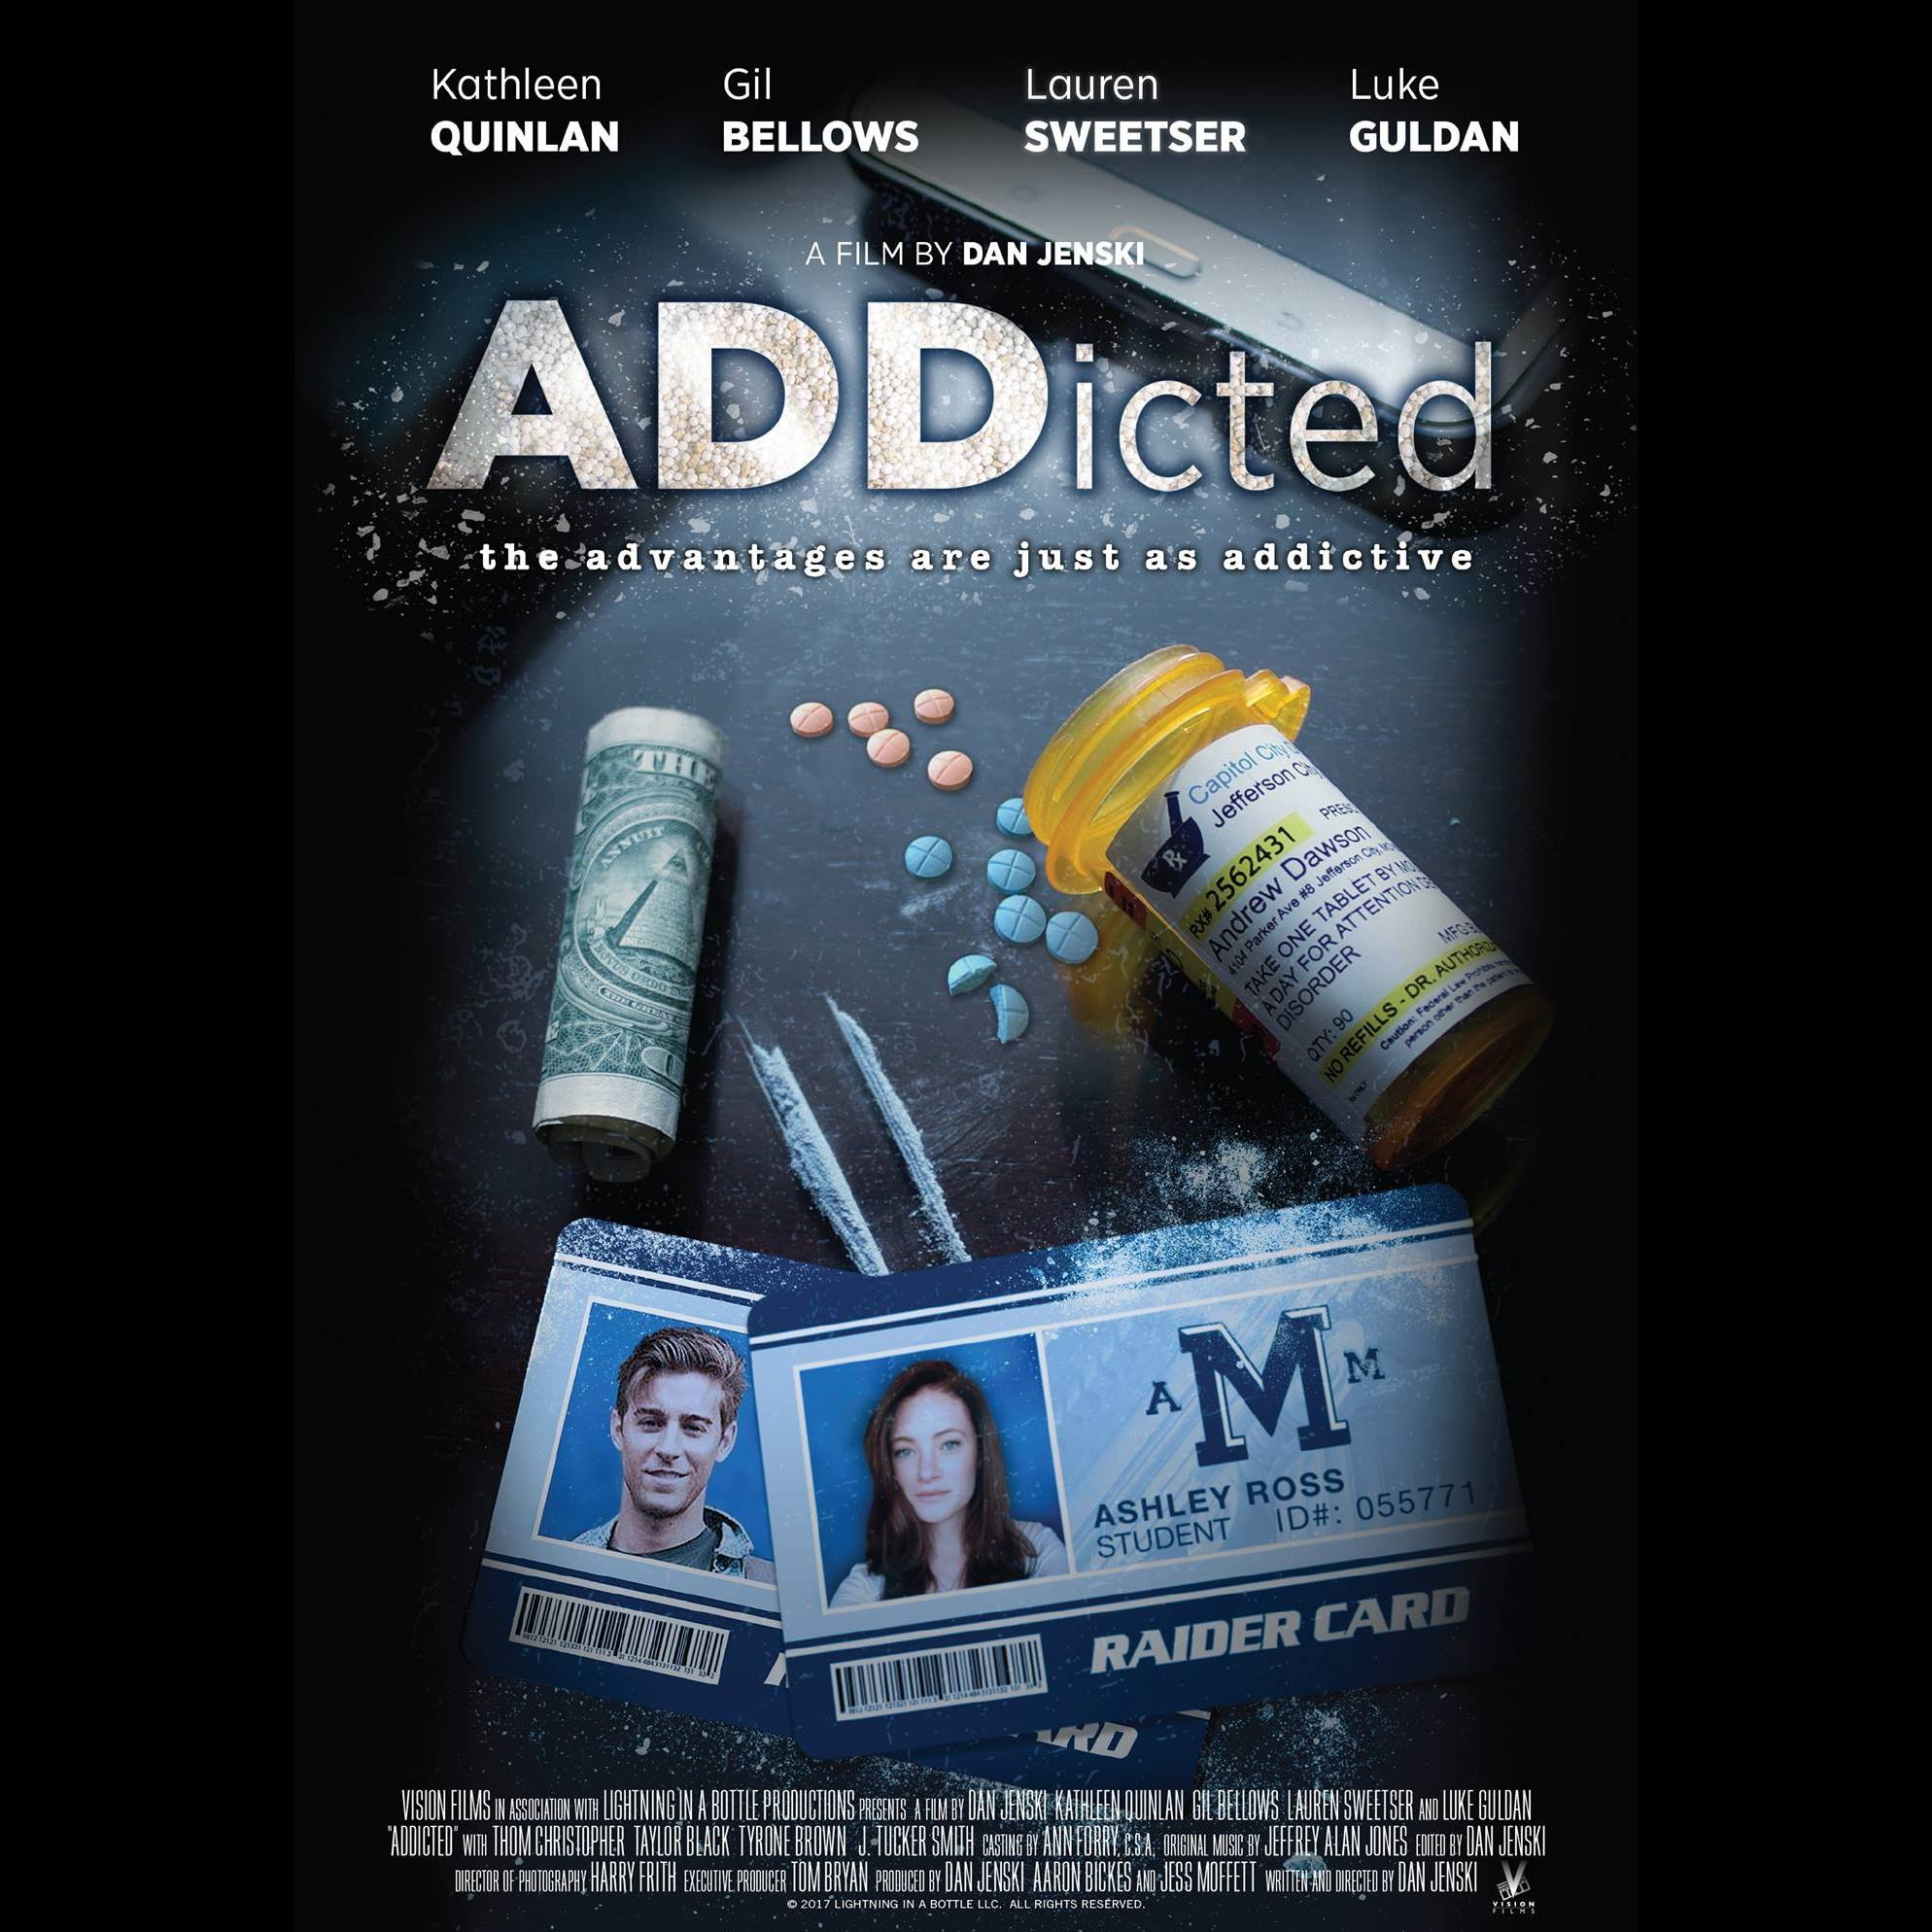 From HuffPo: Review of ADDicted, A Sensitive Film About Adderall Abuse